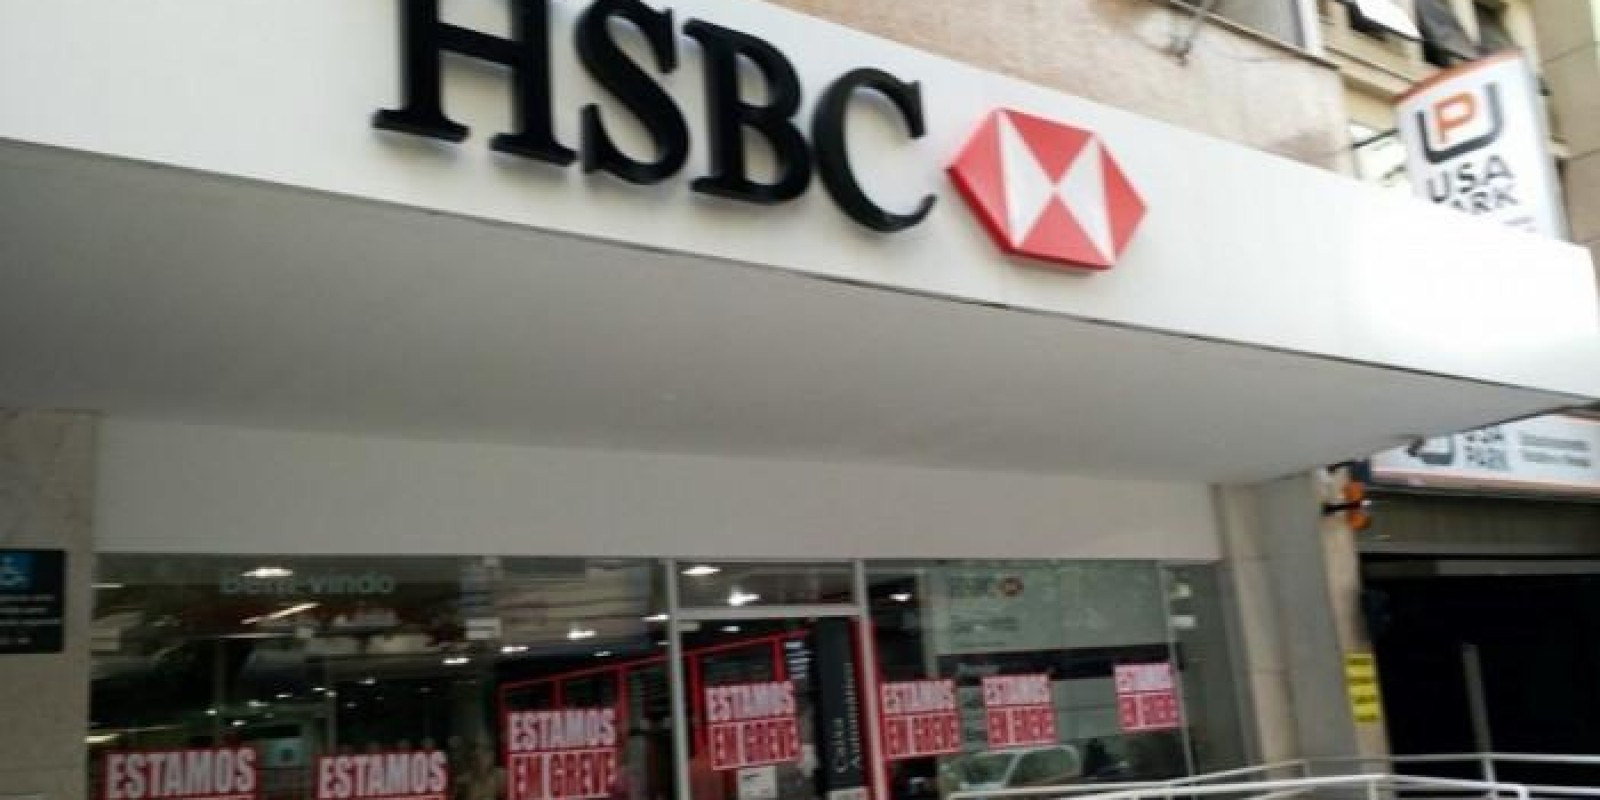 Série documental da Netflix escancara crimes do HSBC